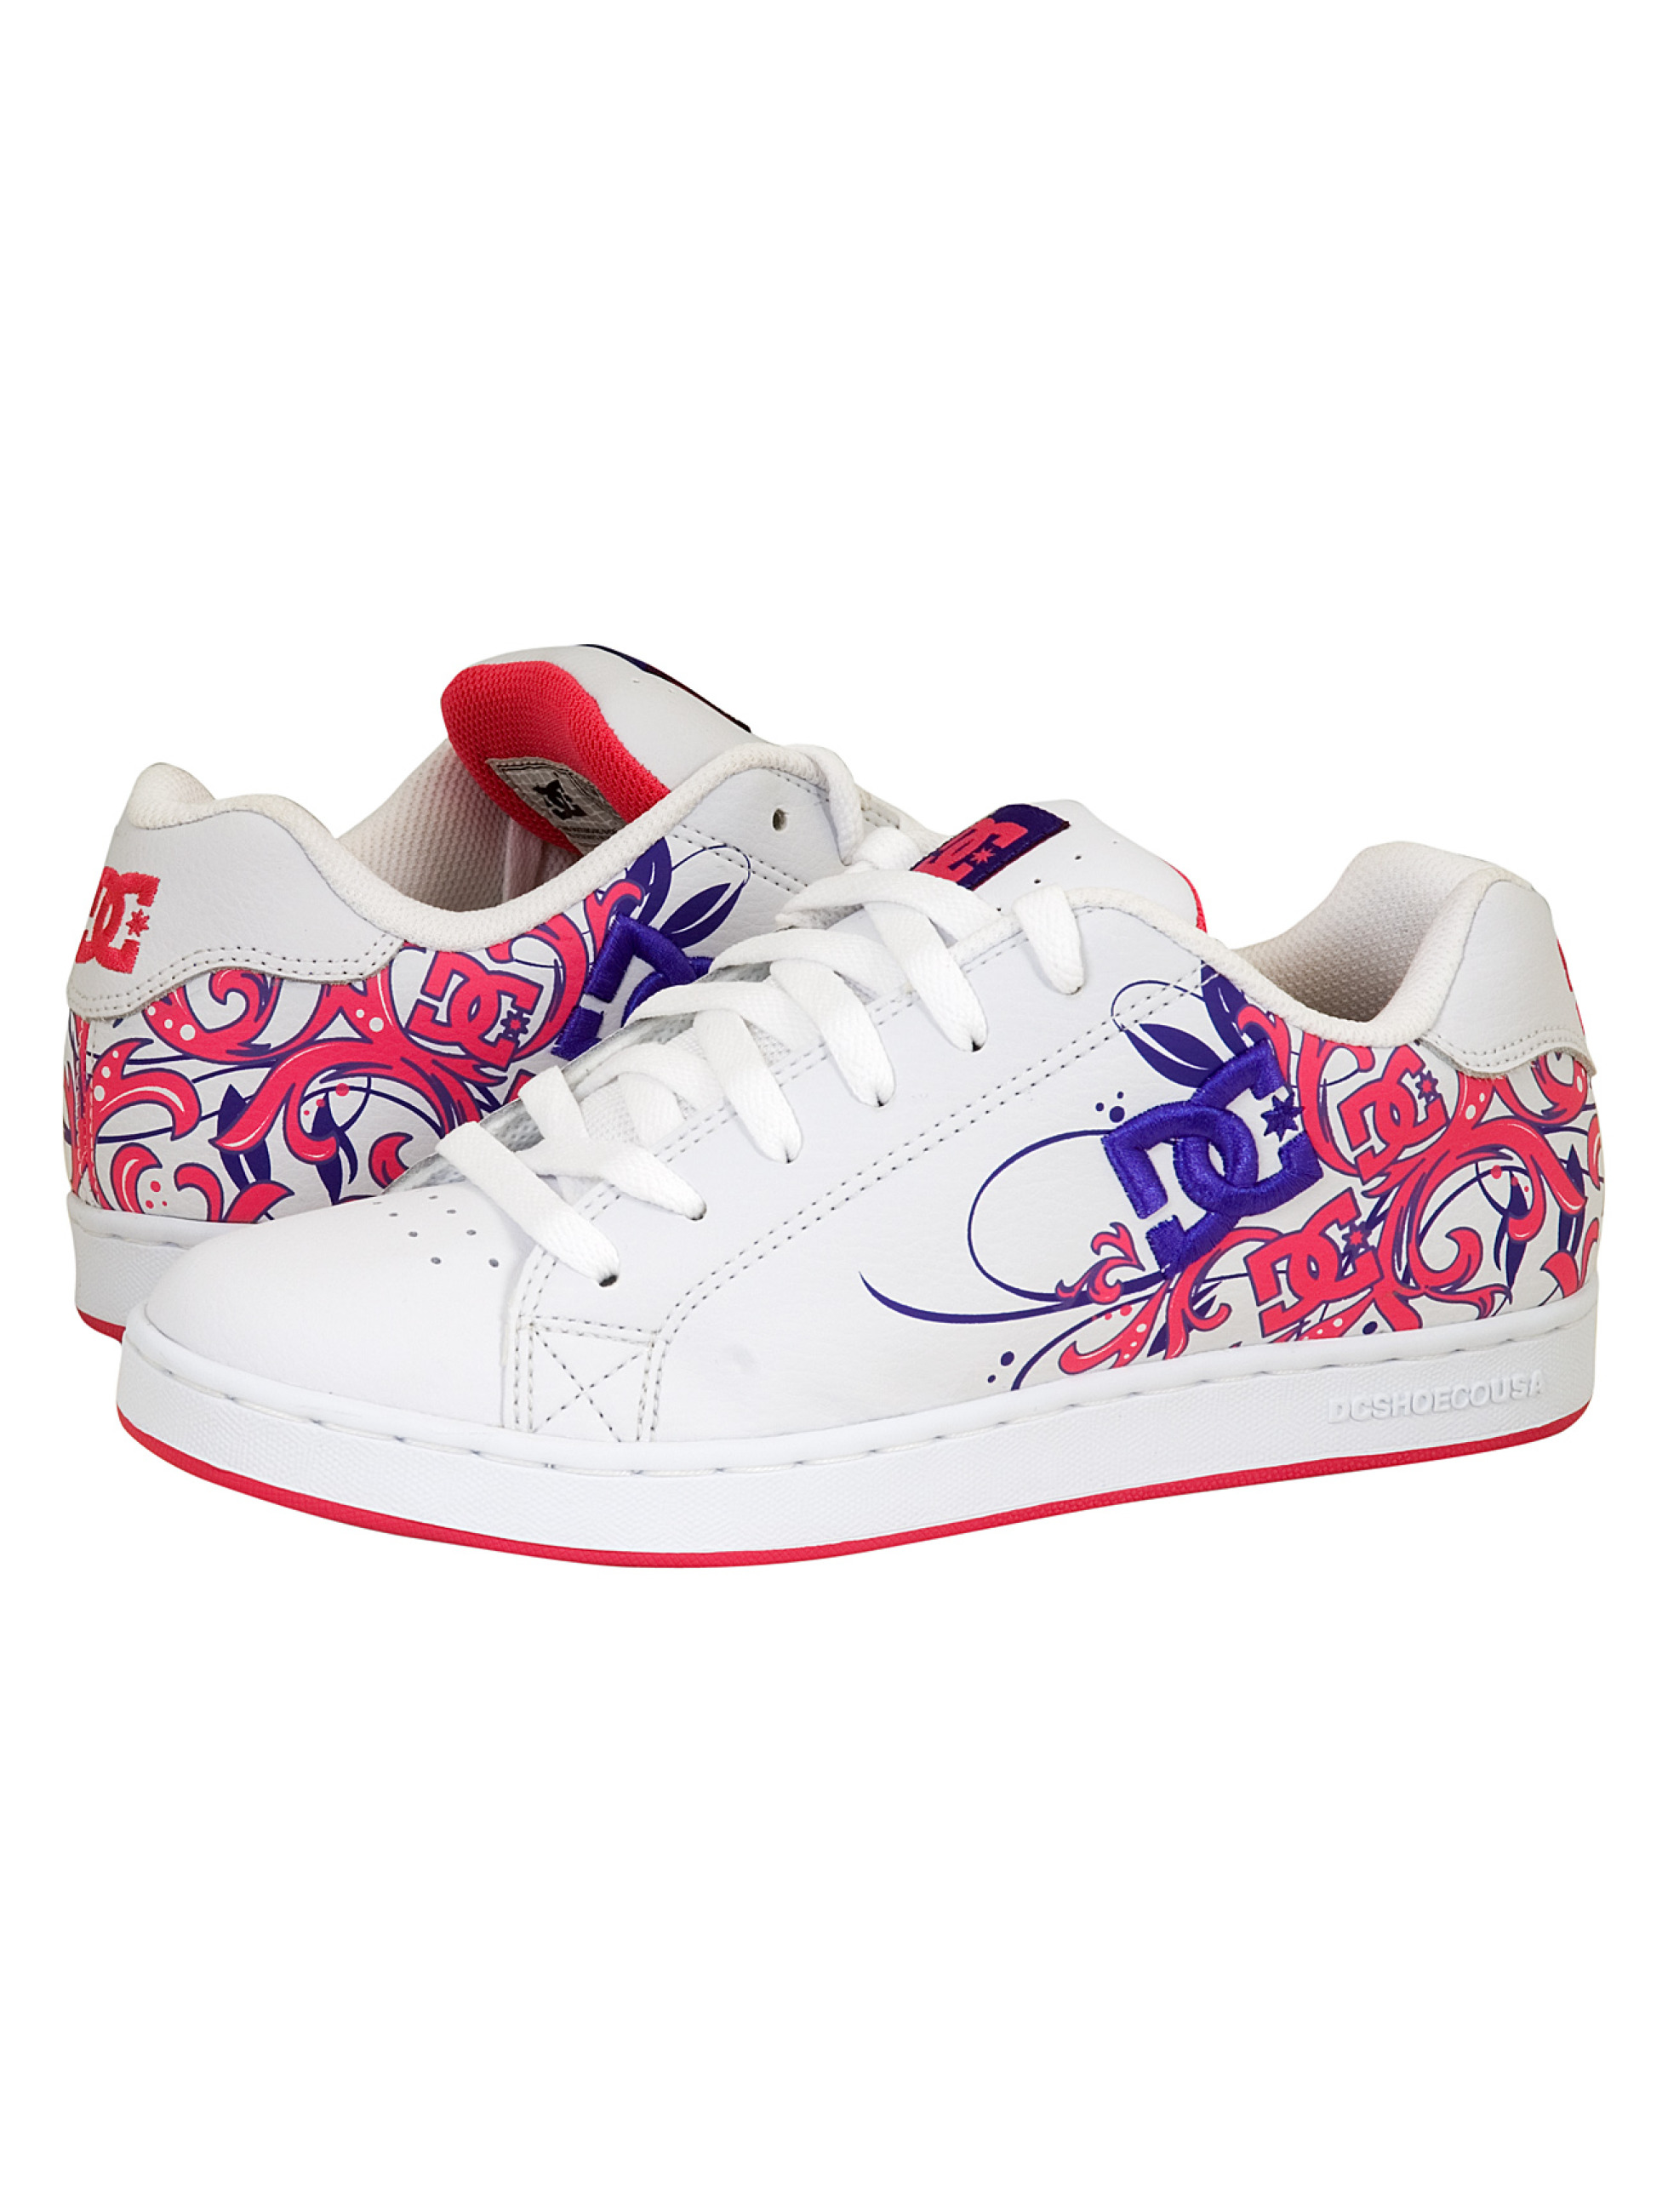 Womens Skate Shoes Images